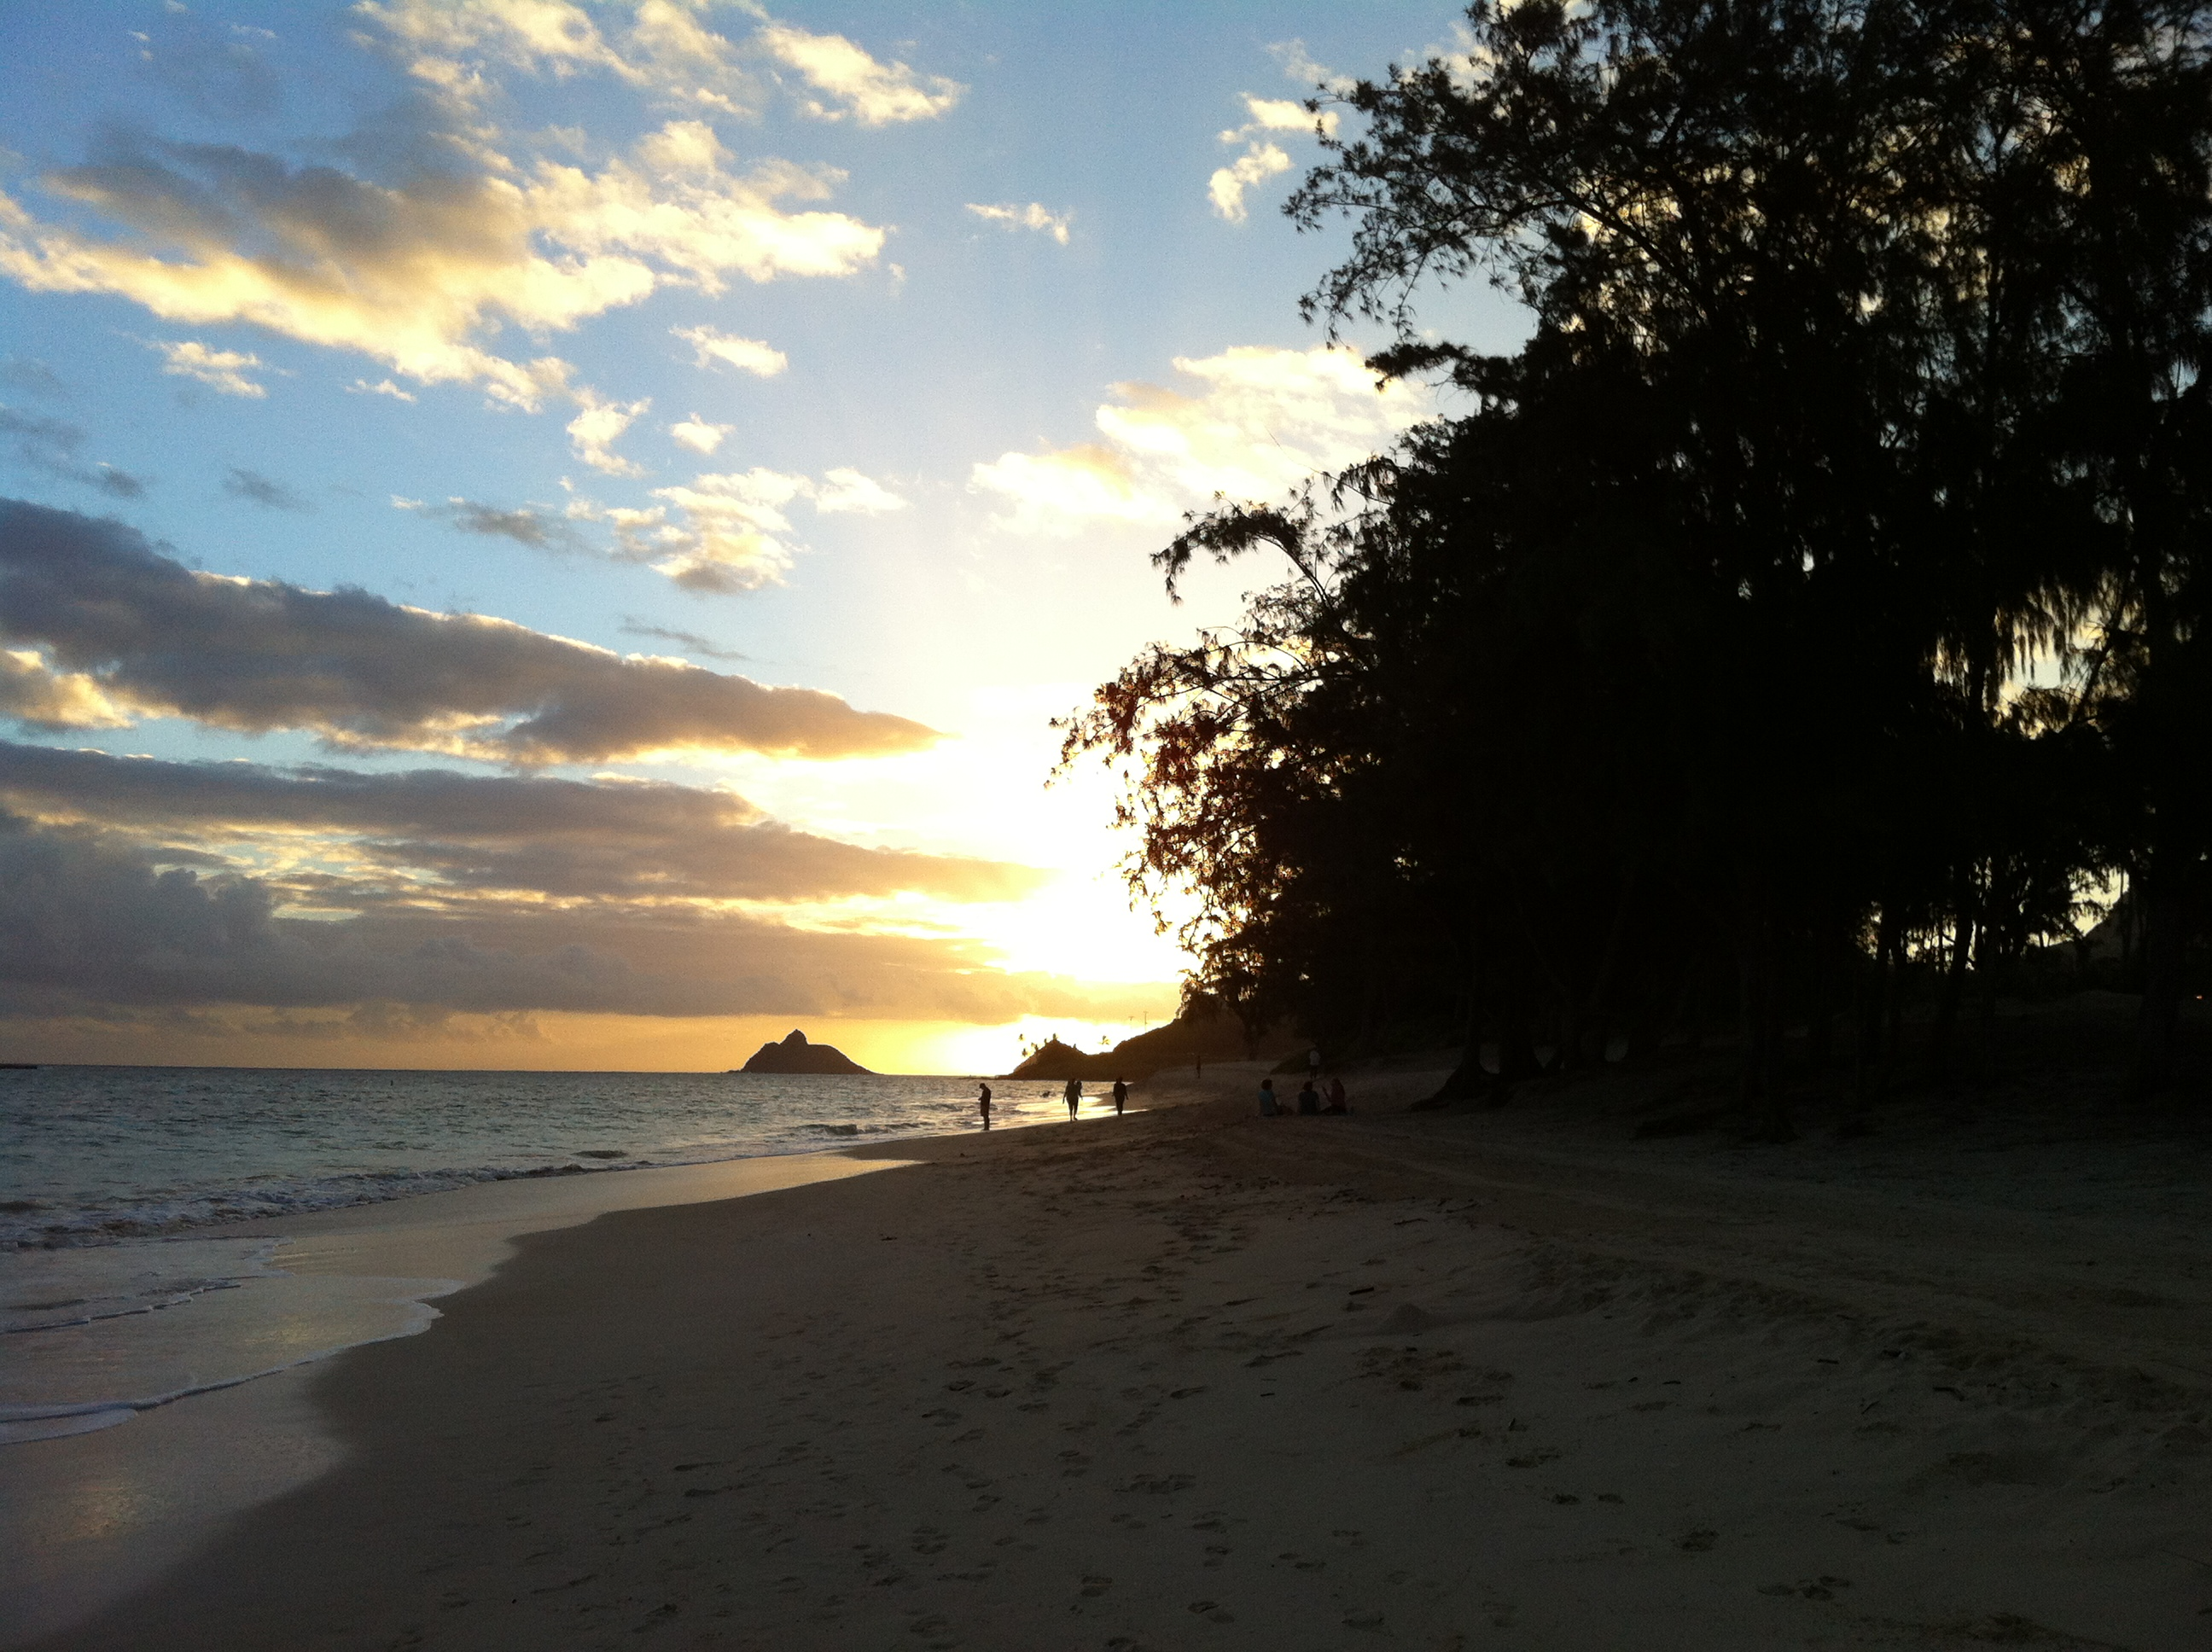 Sunday sunrise at Kailua beach